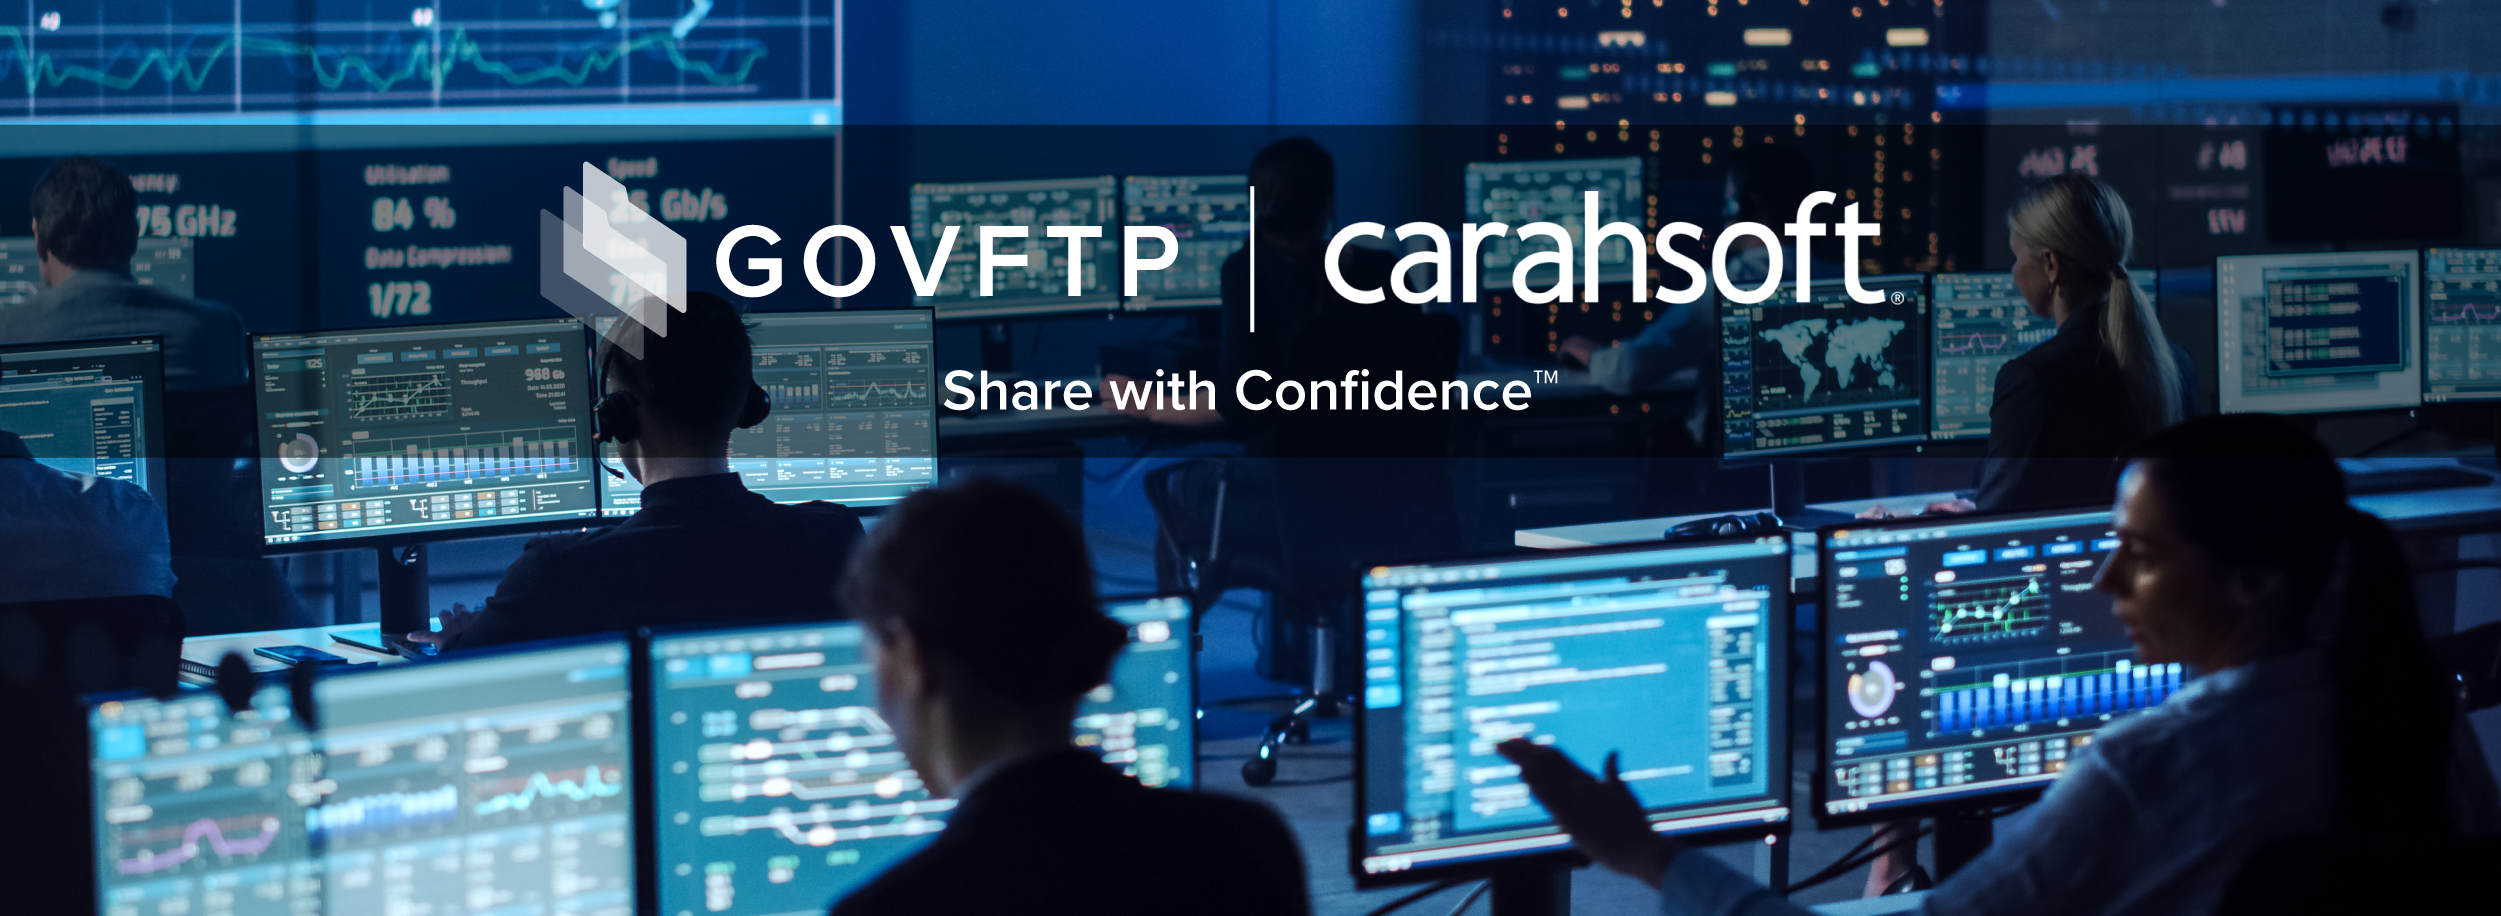 FTP Today Partnership with Carahsoft for GOVFTP Cloud